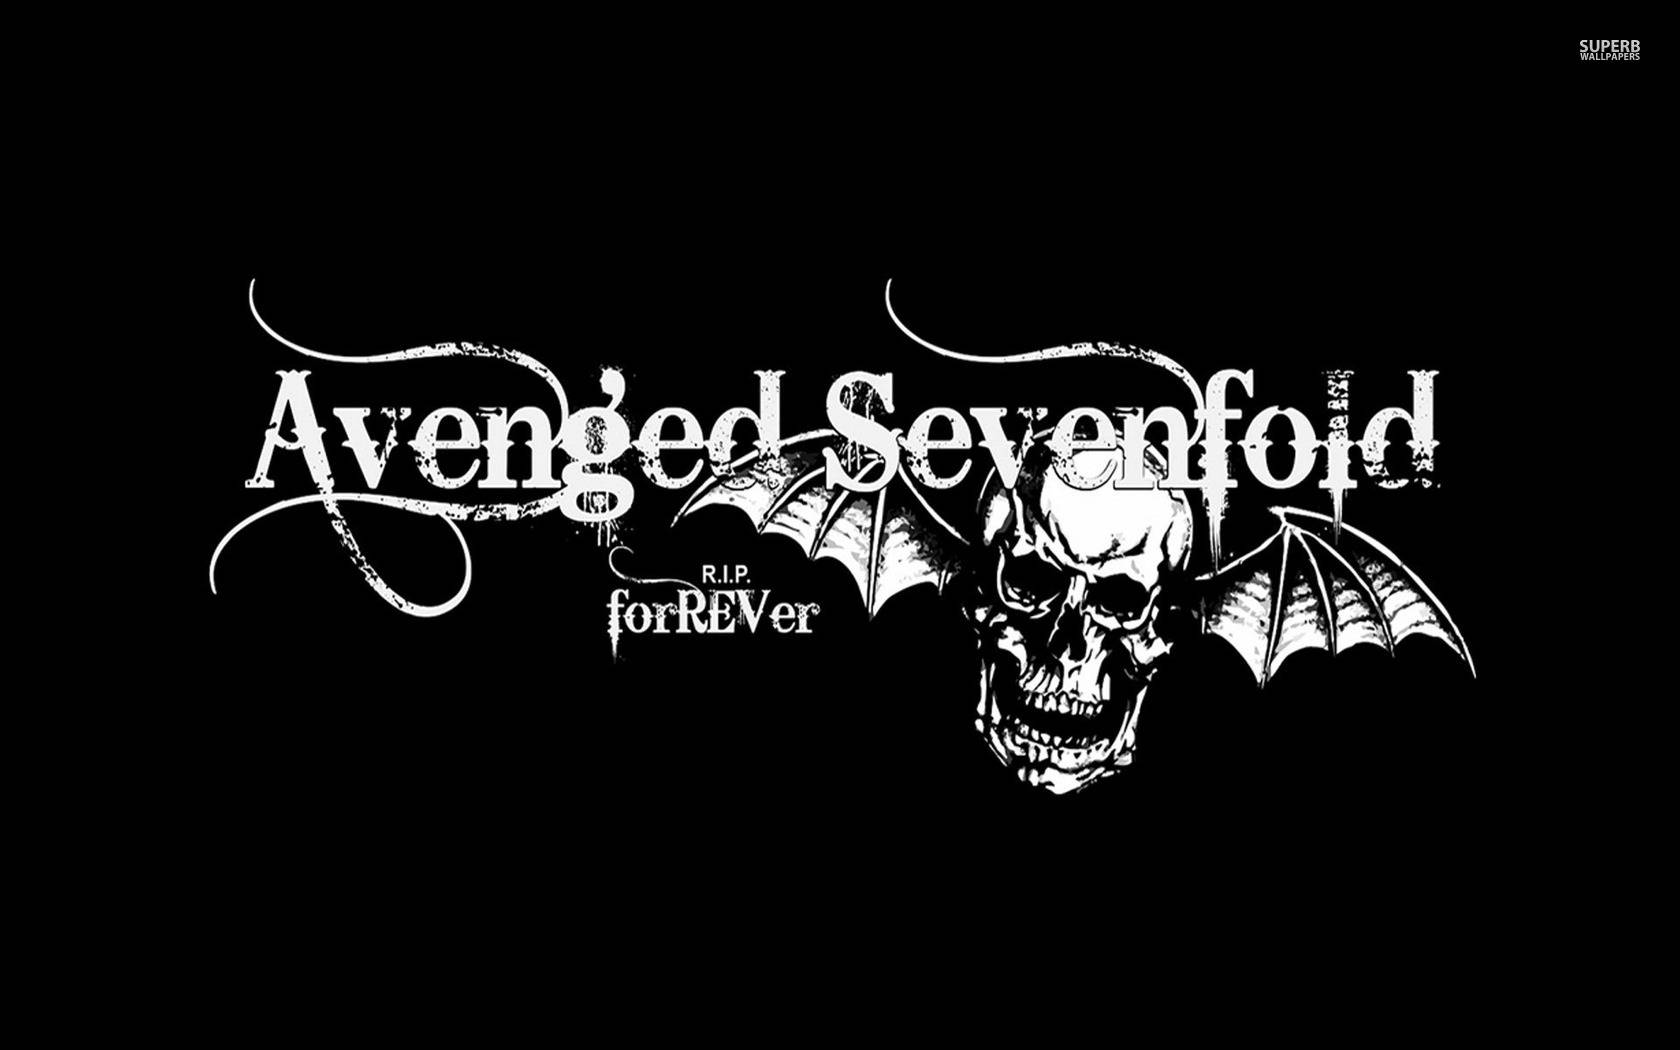 Sevenfold 2015 Wallpapers - Wallpaper Cave